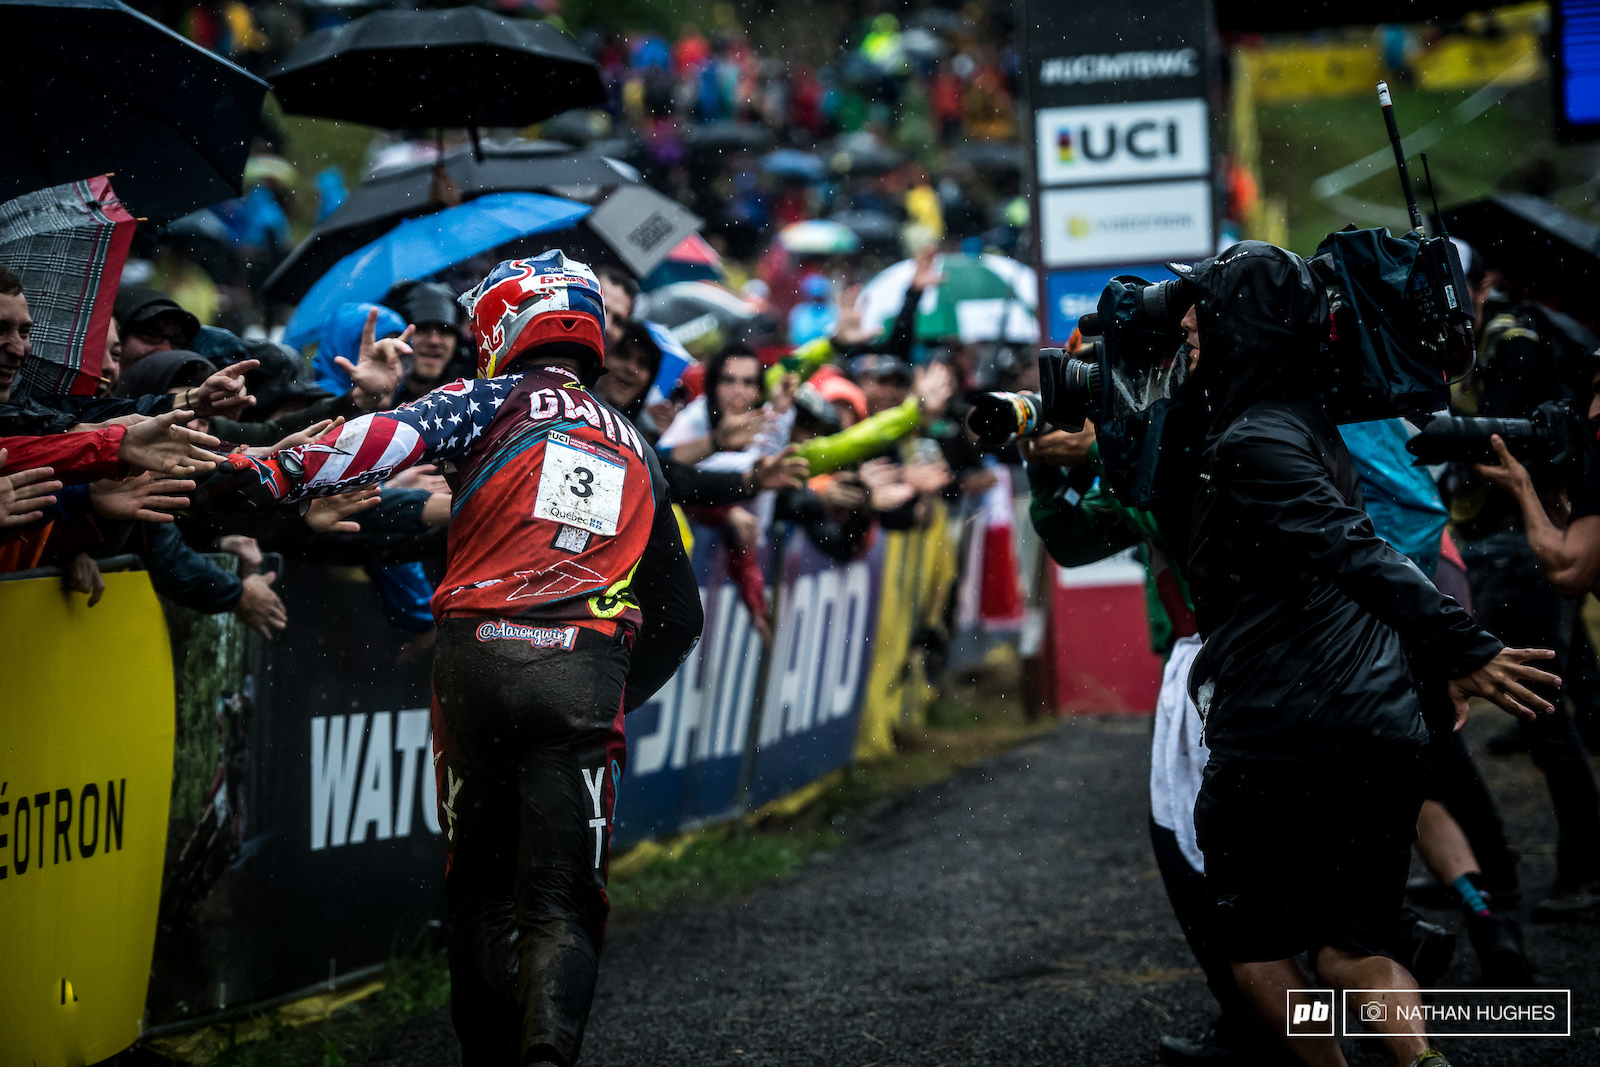 Gwin sheds the bike to celebrate in the still pouring rain.